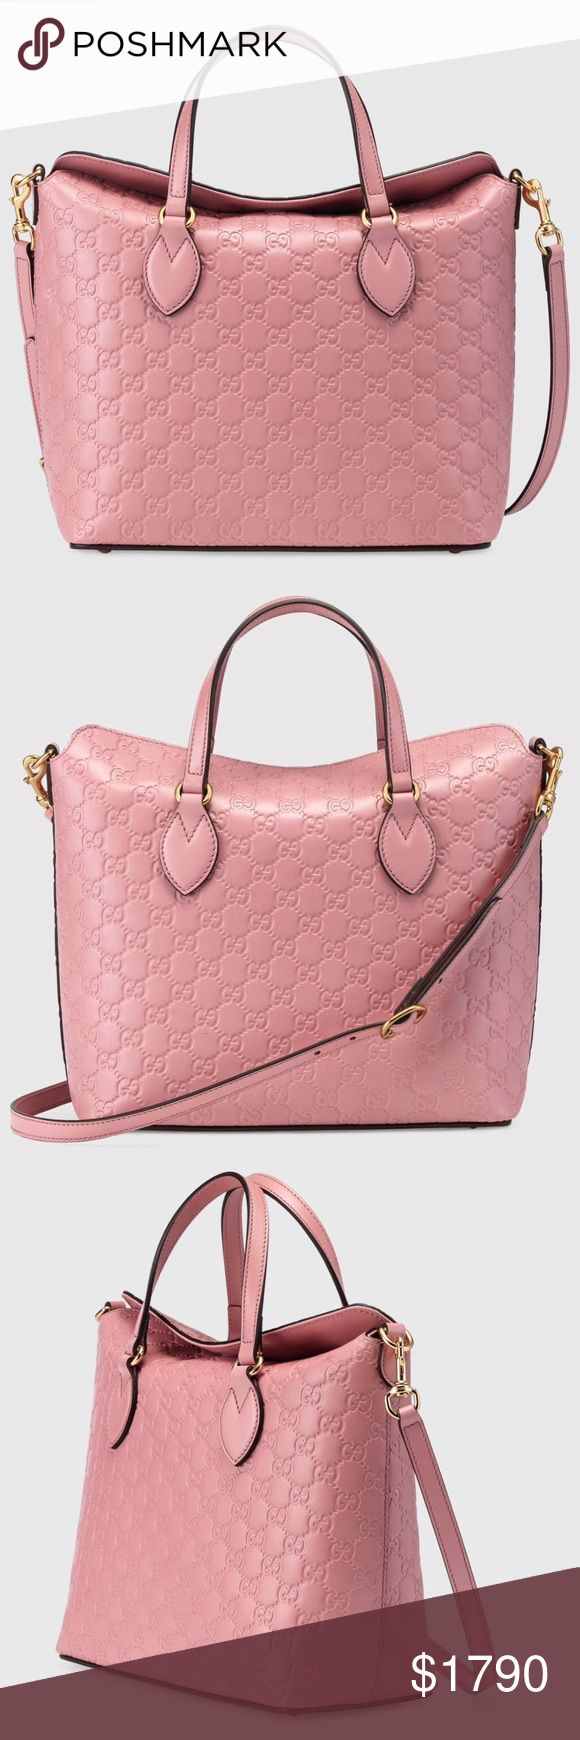 """NEW GUCCI SIGNATURE LEATHER TOP HANDLE BAG Authentic. Made in Italy. Brand new with tags. This bag has controlled card, authenticity card, care card, care book, and dust bag.  A new shape for Fall. Made in heat debossed Gucci Signature leather resulting in a defined print with a firm texture. Candy pink Gucci Signature leather with candy pink leather detail Gold toned hardware Interior zip and smartphone pockets Double handles with 5"""" drop Removable and adjustable shoulder strap with 19.5""""…"""